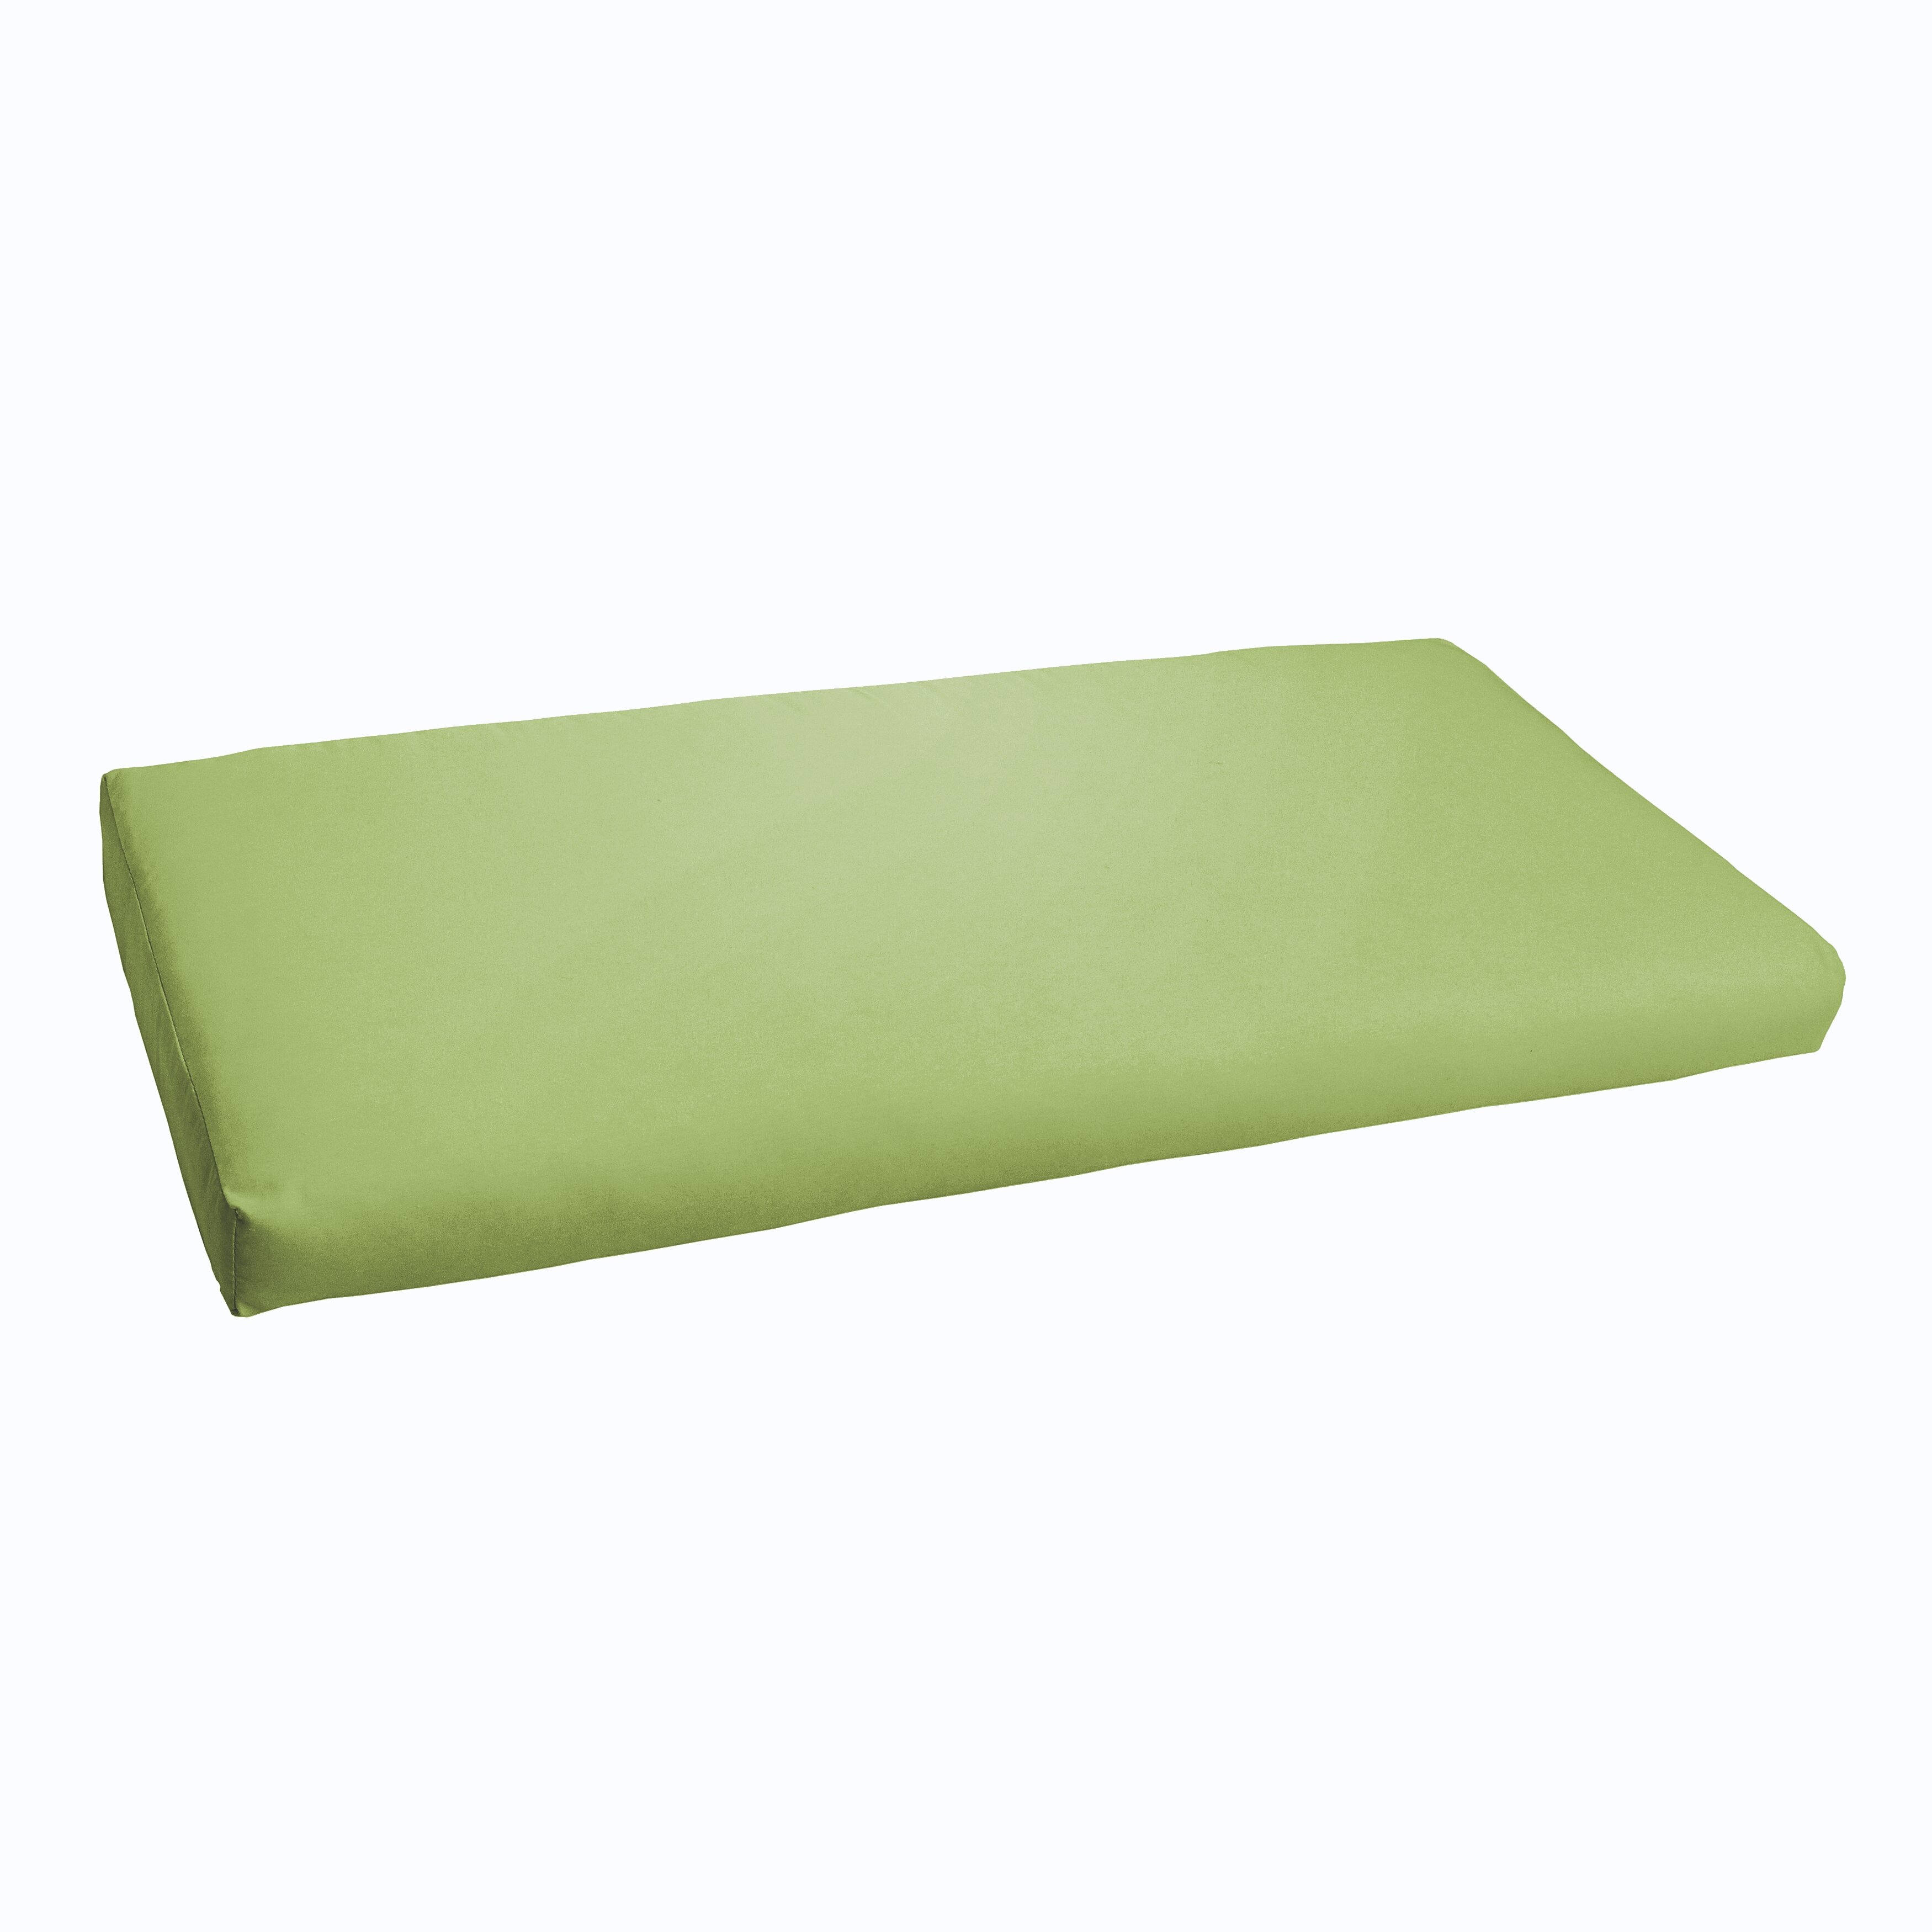 Selene indoor outdoor bench cushion wayfair - Indoor bench cushions clearance ...